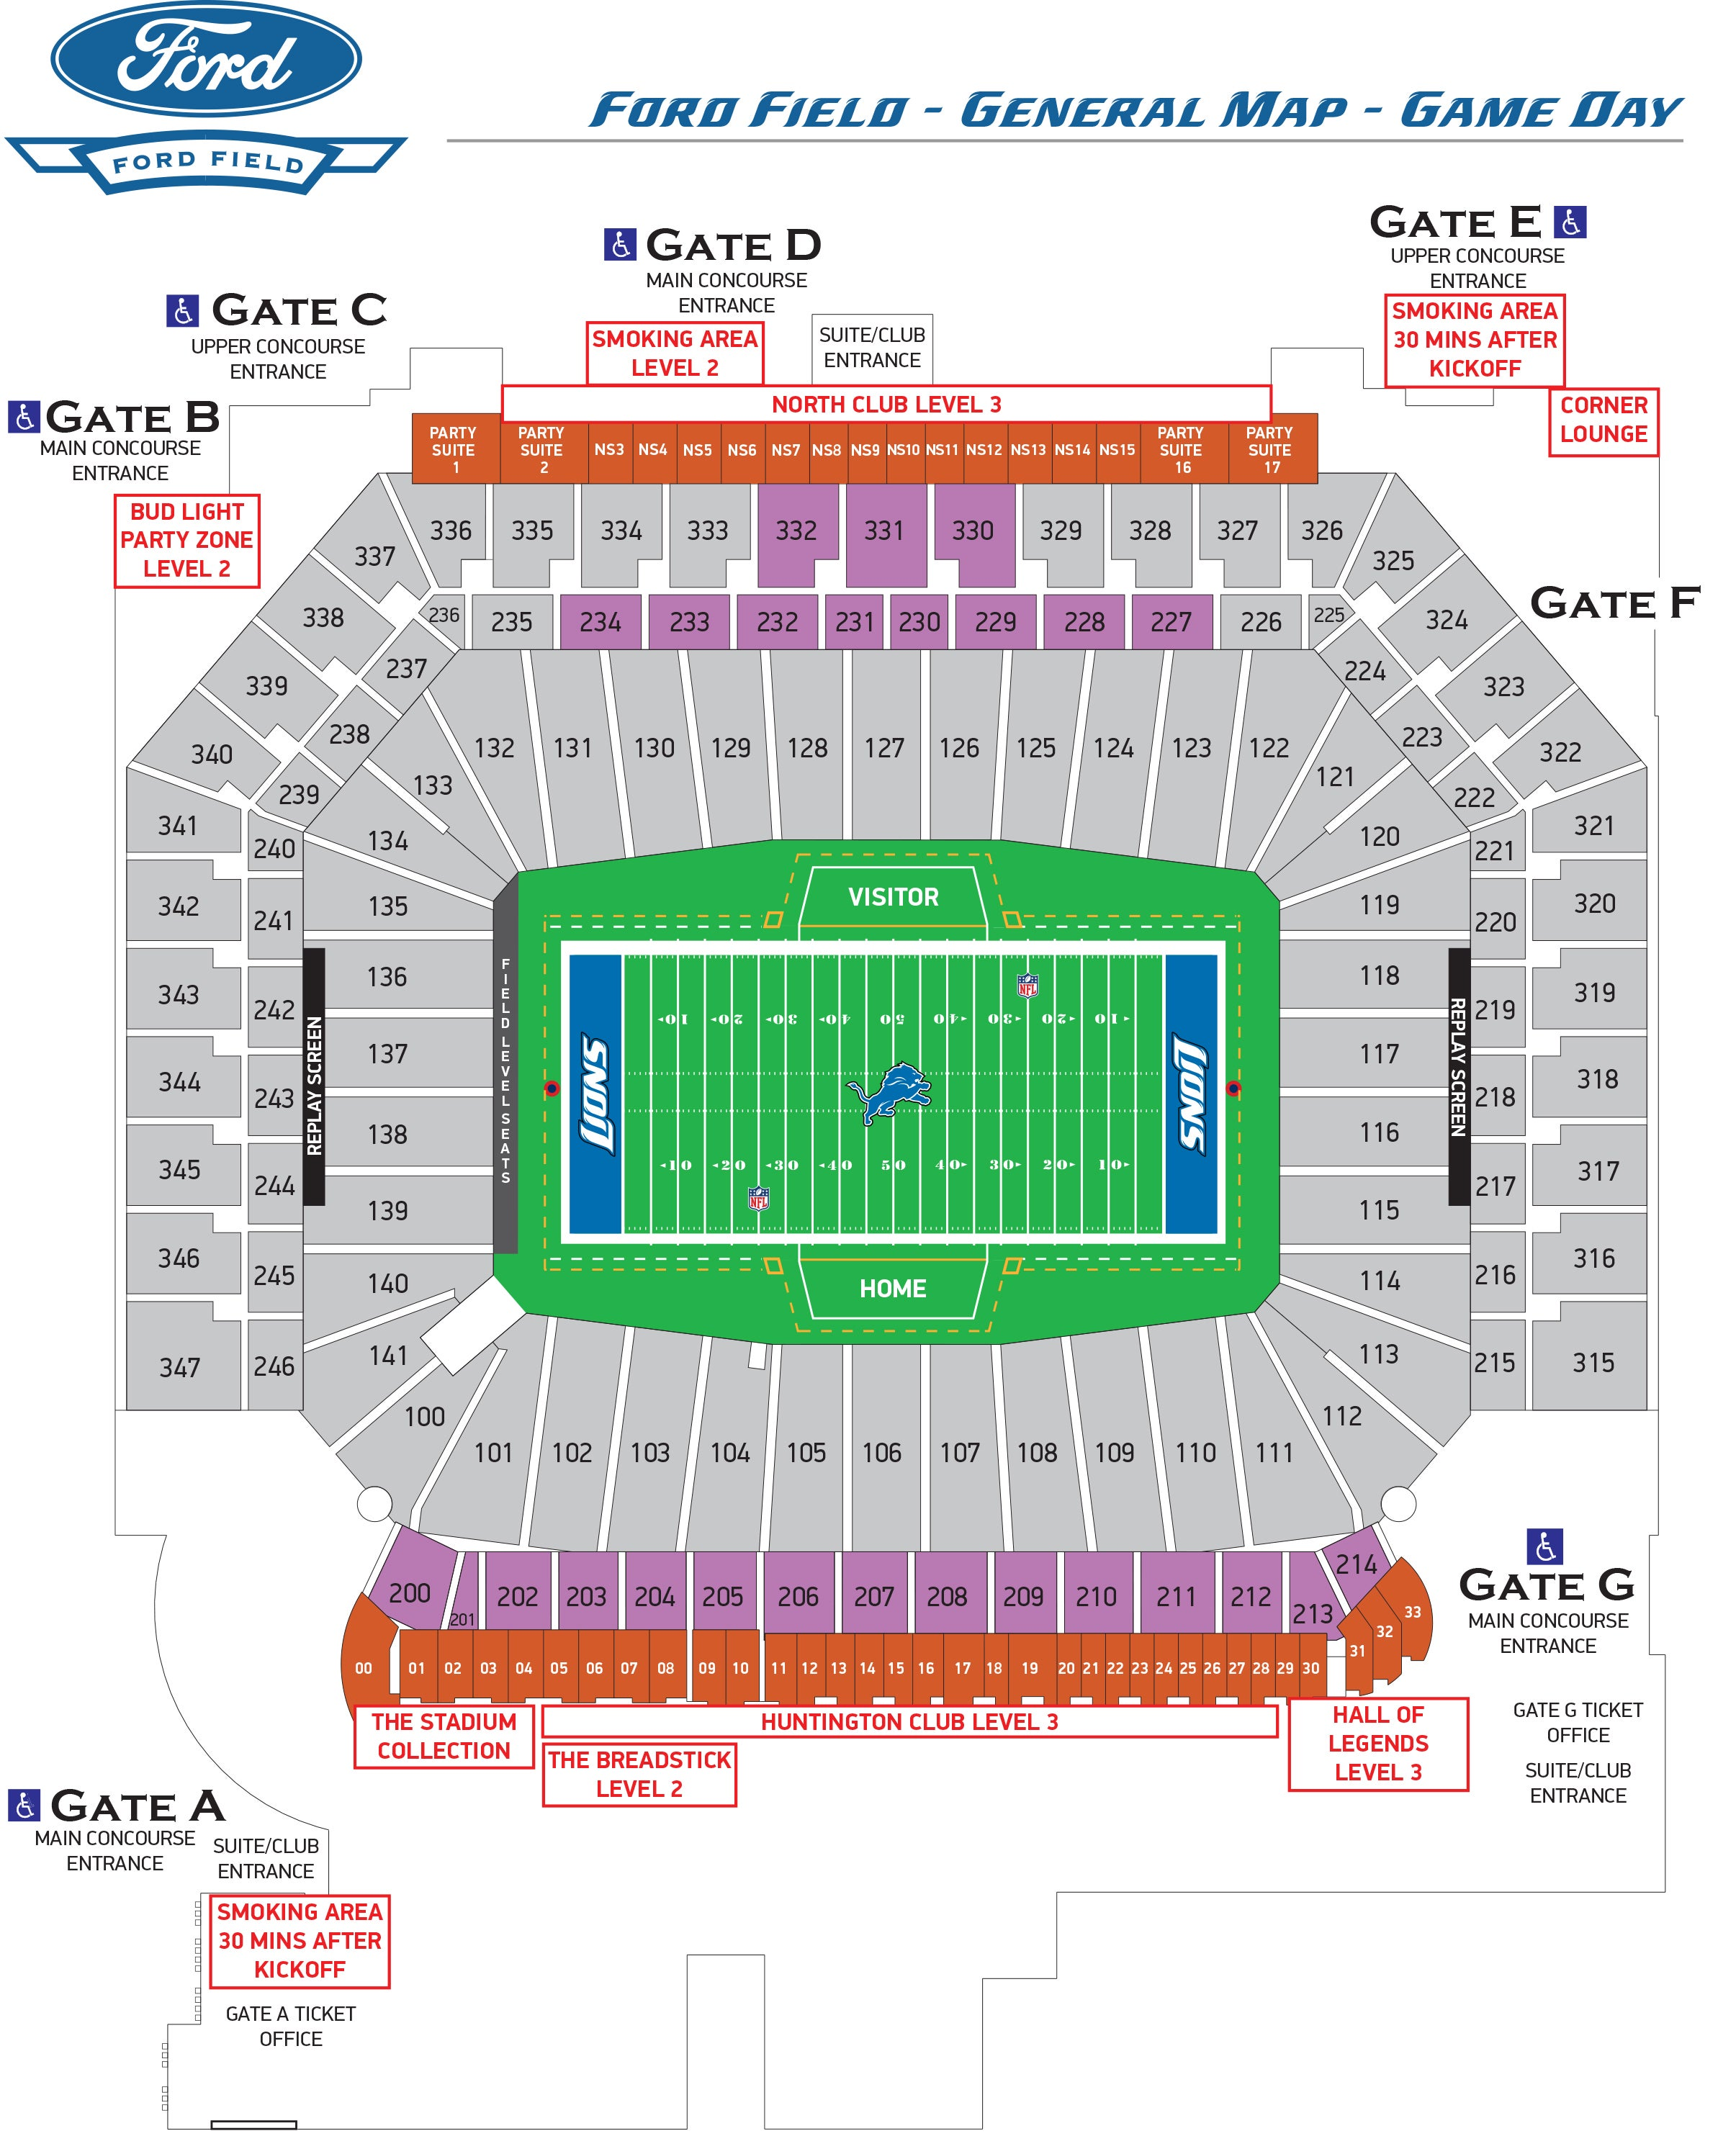 ford field seating chart. Cars Review. Best American Auto & Cars Review